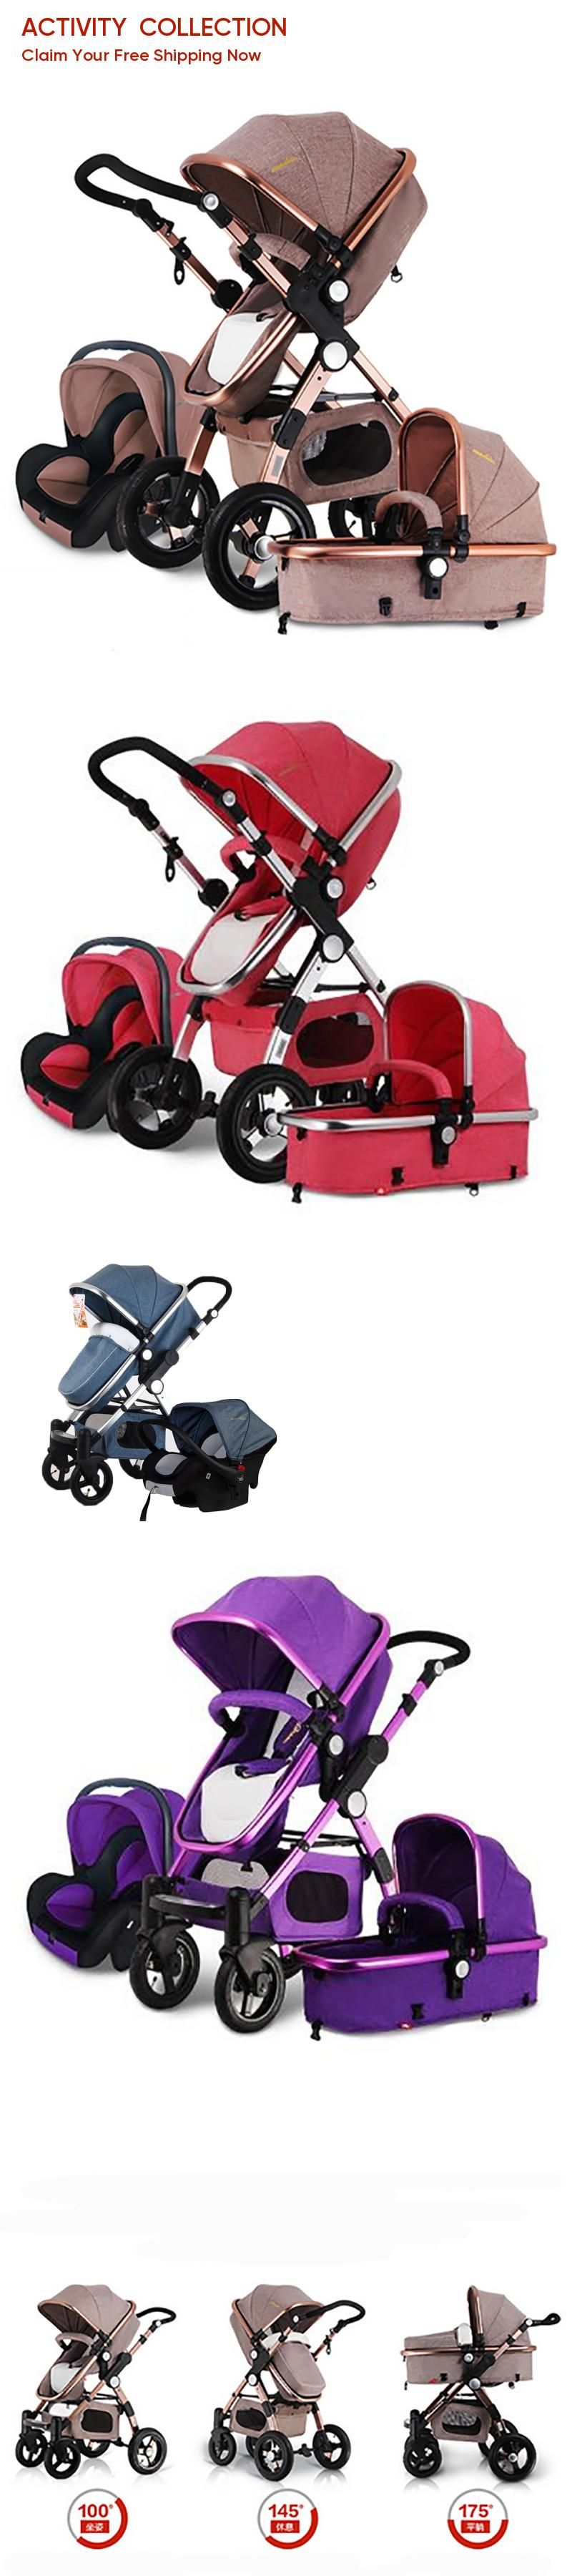 European Baby Stroller 3 in 1,Baby Pushchair 3 in 1,High